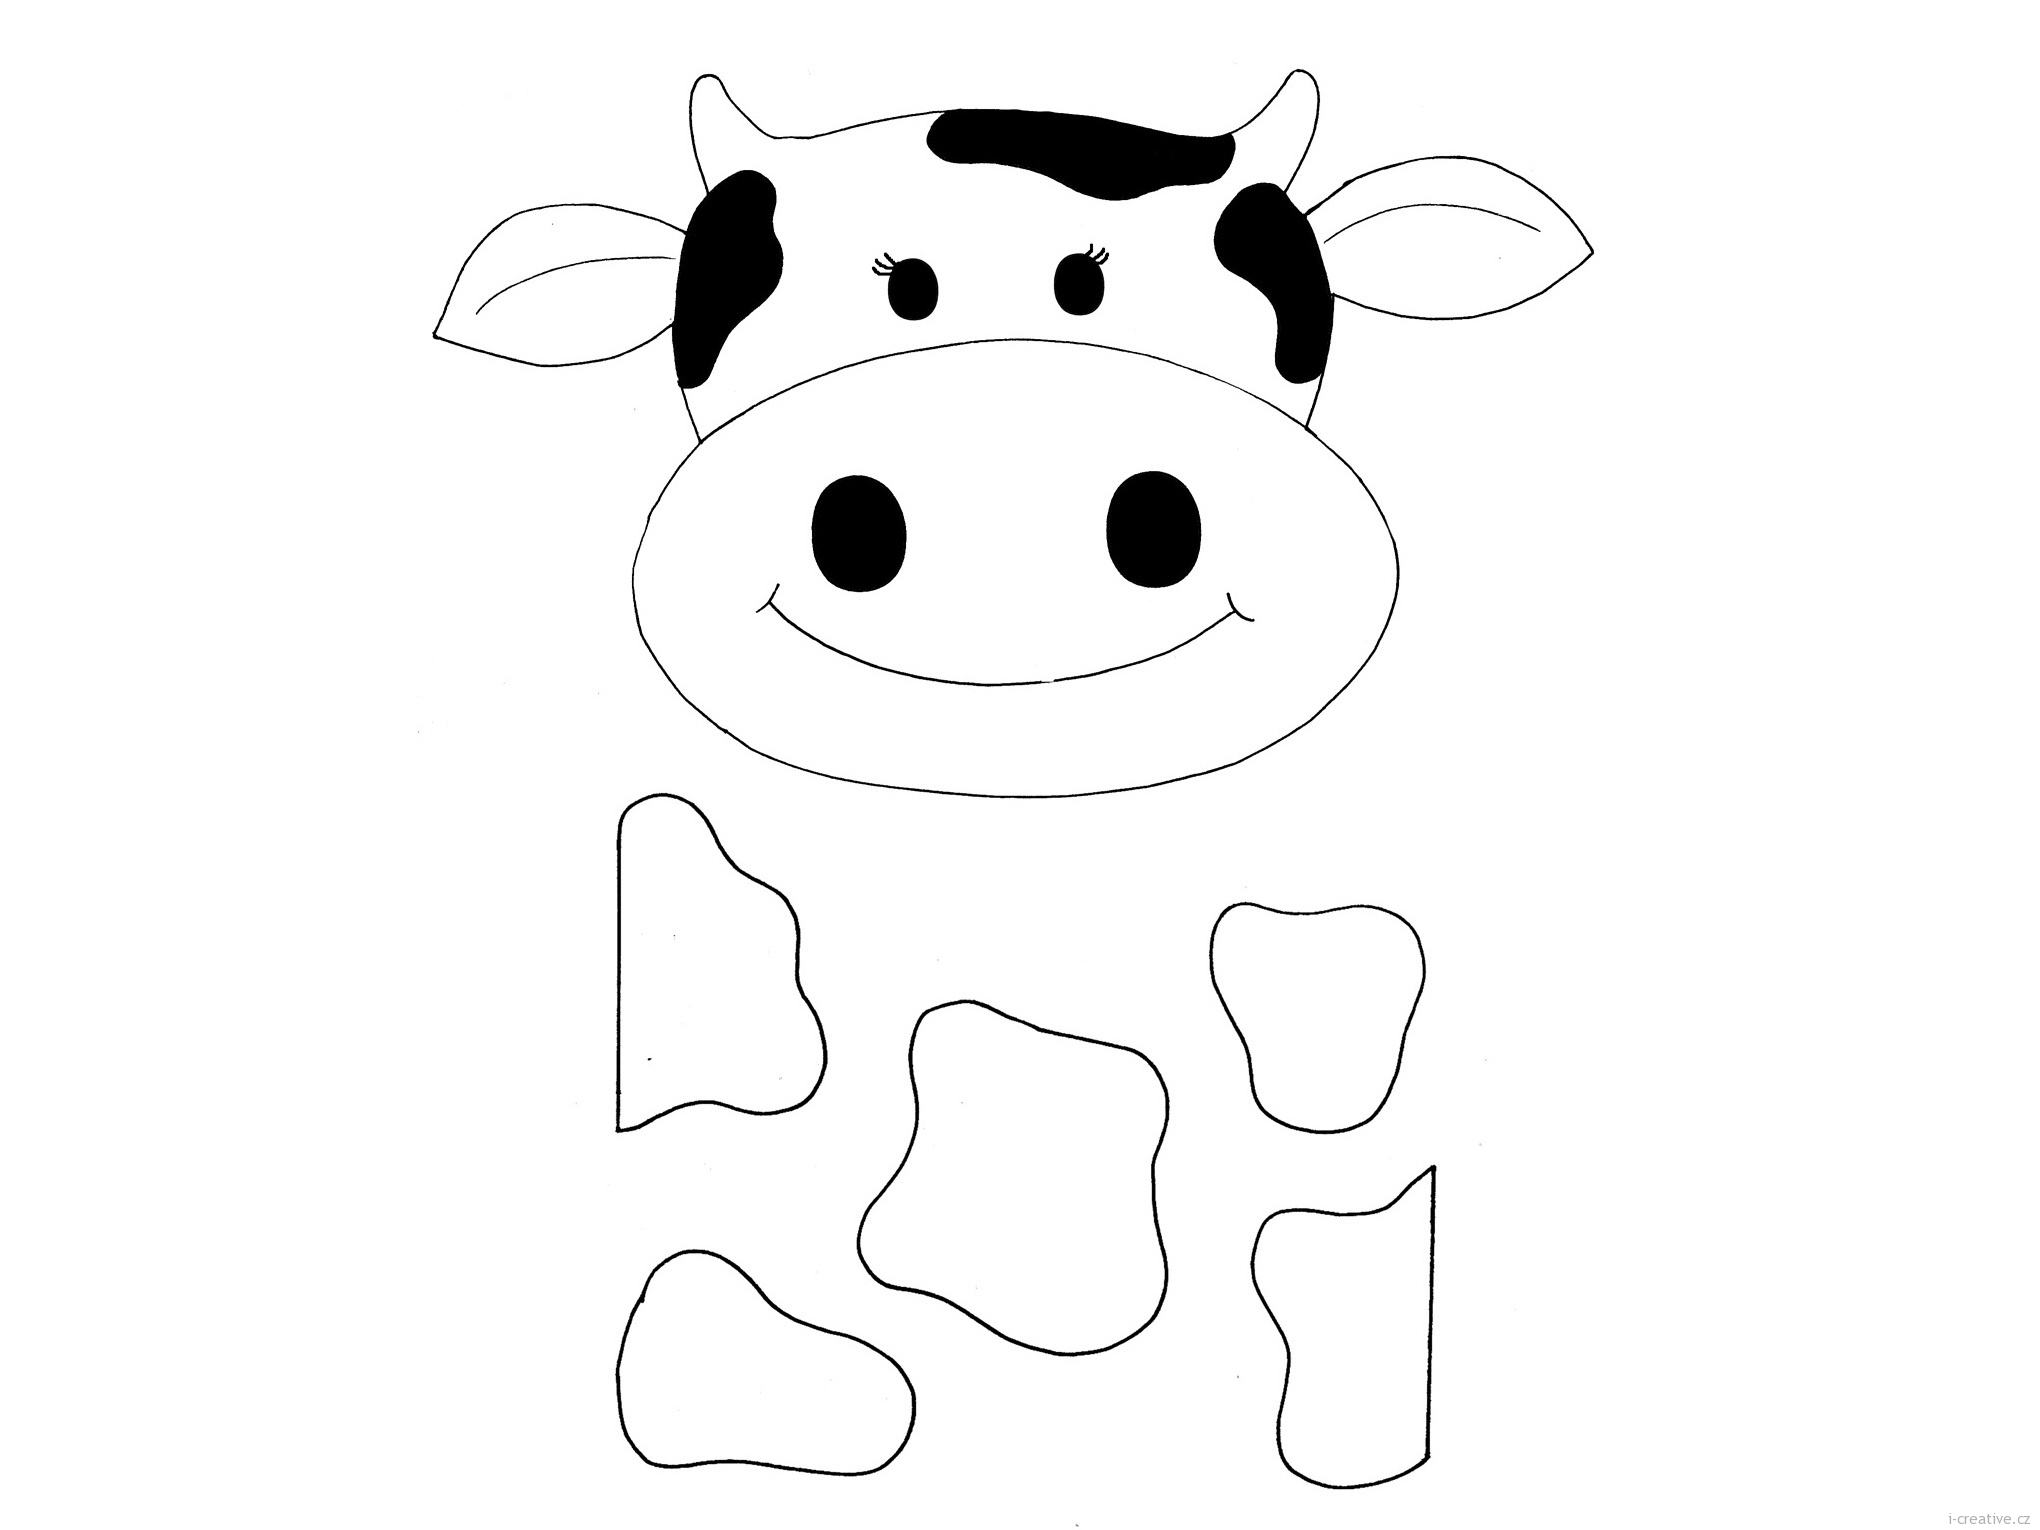 cow head coloring page cow head coloring page at getcoloringscom free cow page coloring head